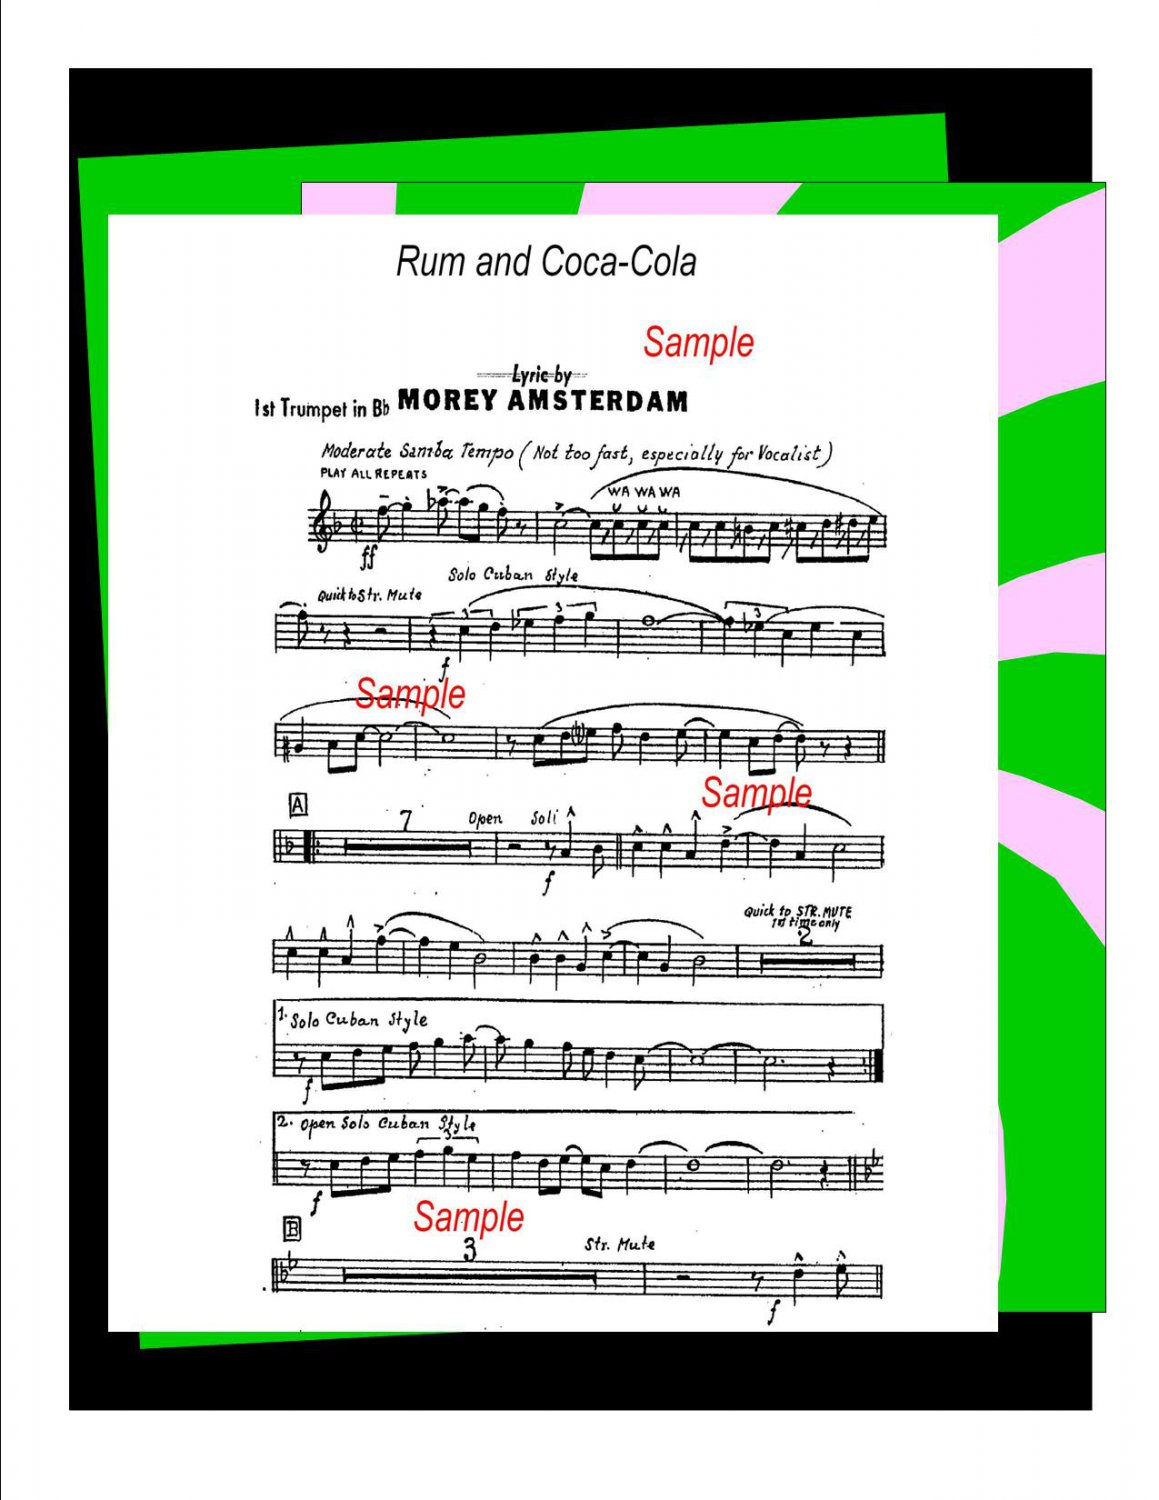 Big Band Music Chart Arrangement Rum and Coca-Cola - PDF